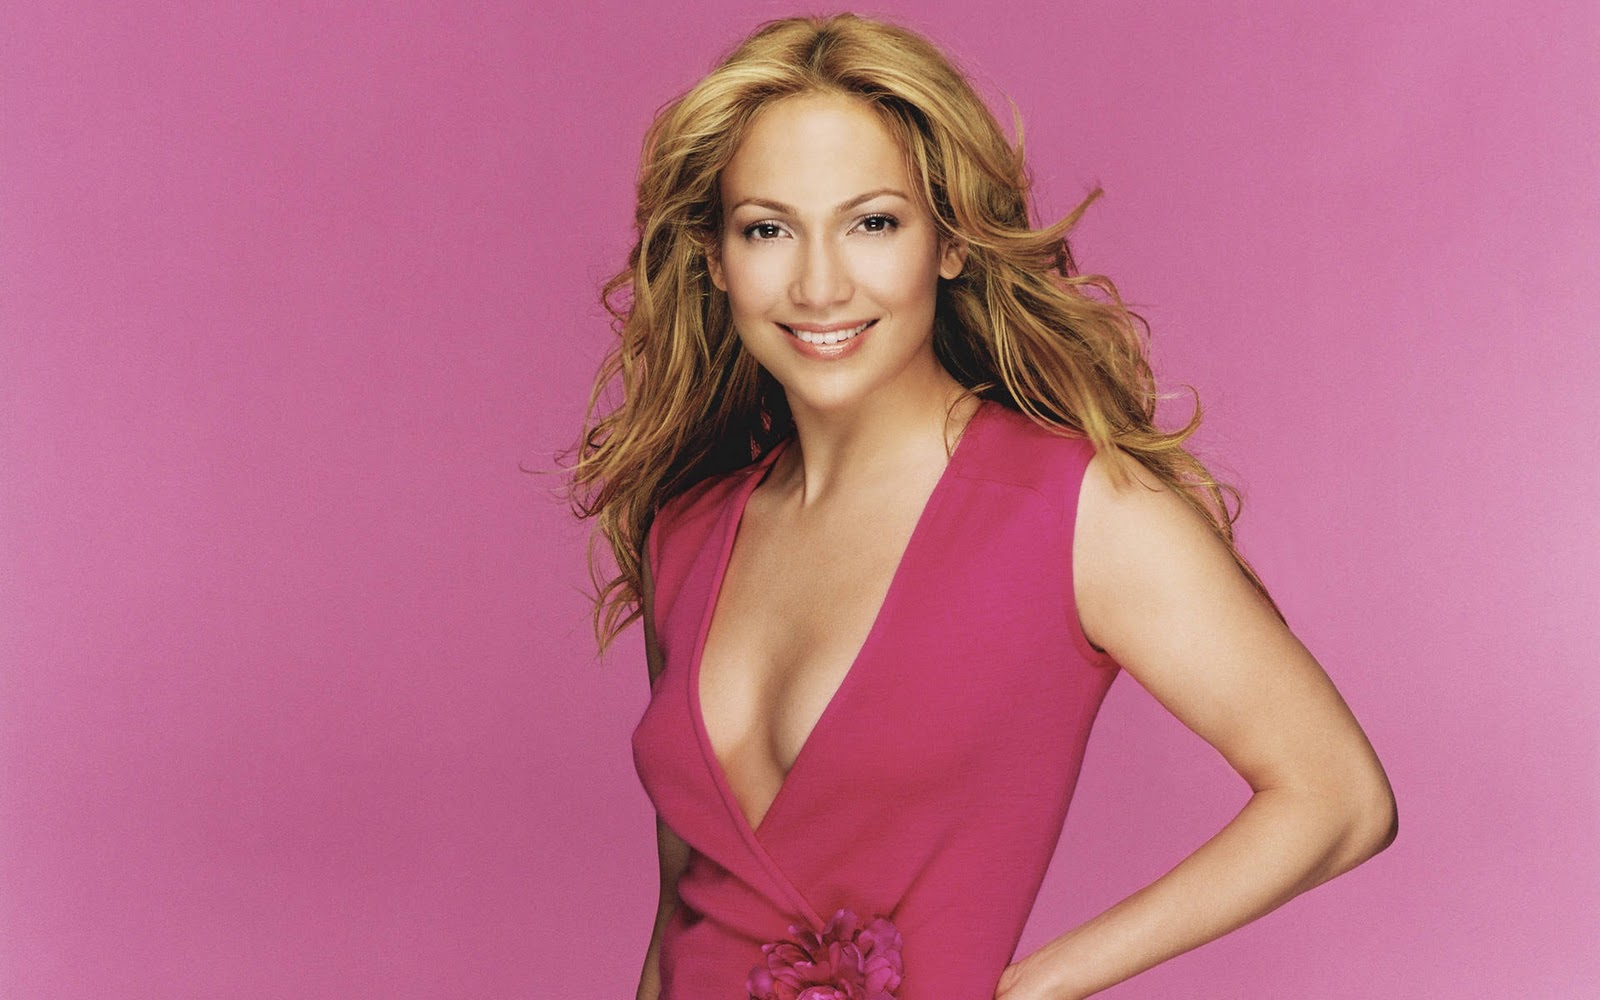 High Defenintion Wallpapers Jennifer Lopez Hd Wallpapers-6029